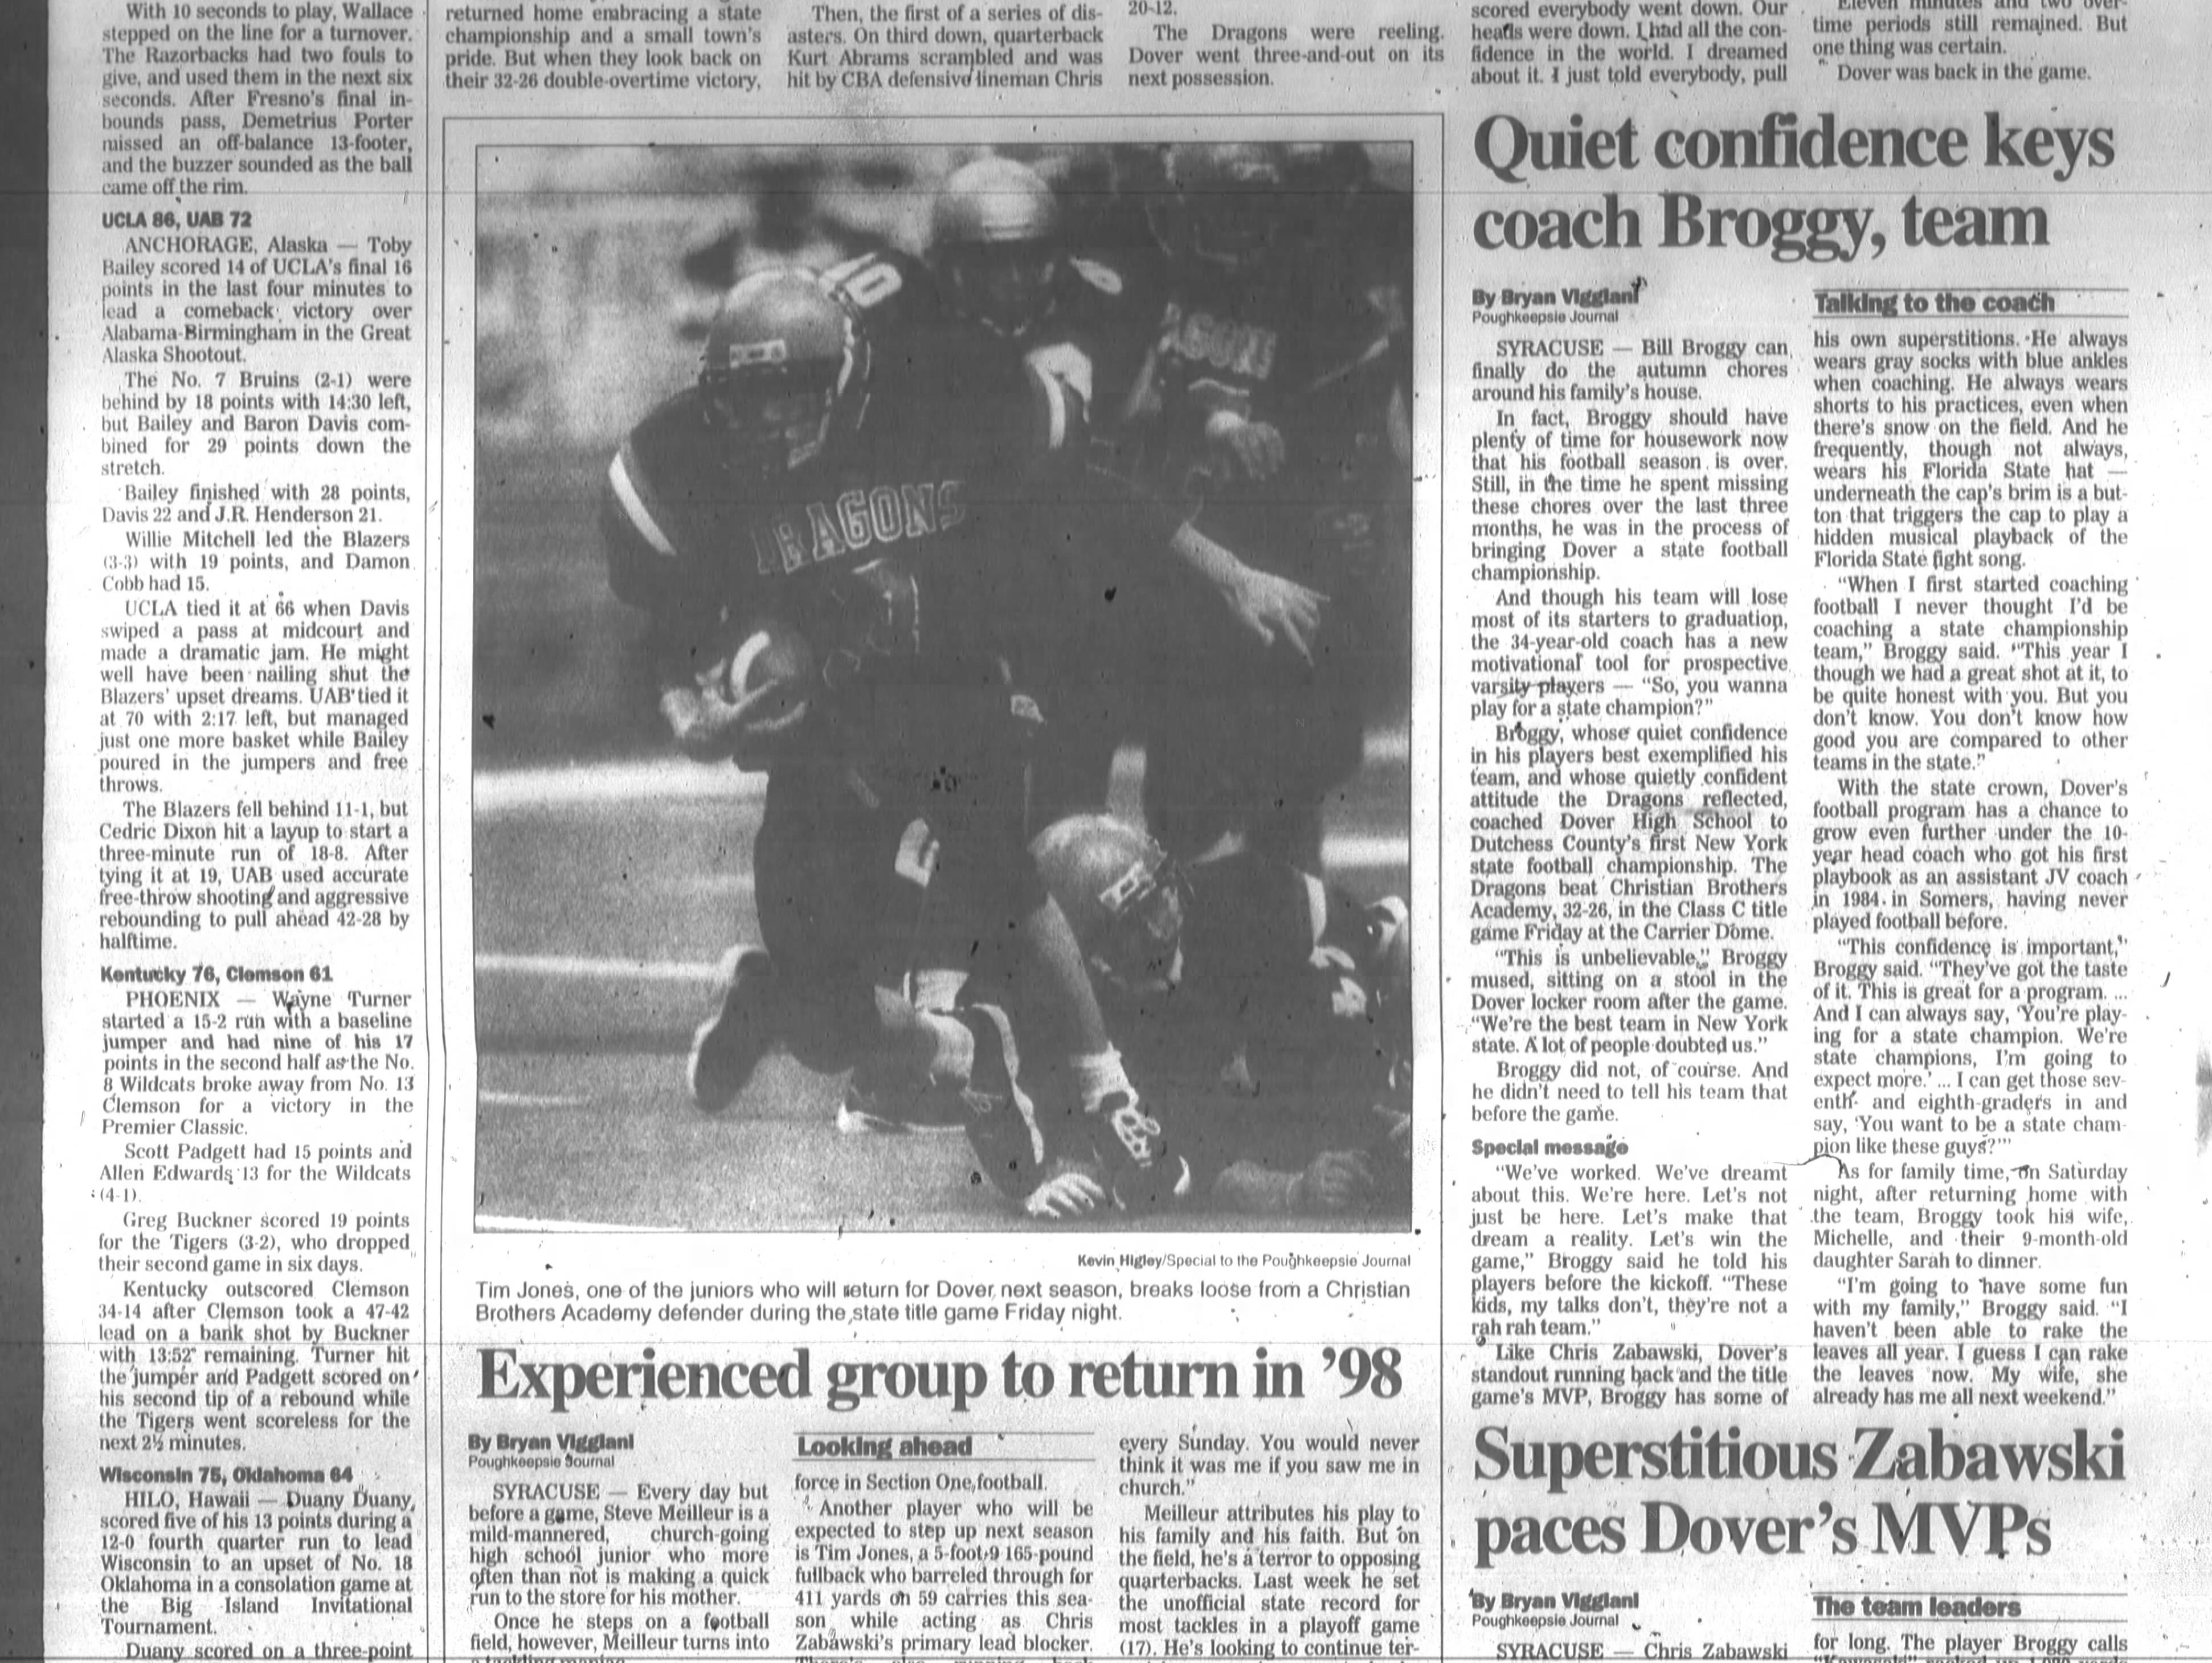 The Journal expanded on its coverage of Dover's state football championship in this page from Nov. 30, 1997.